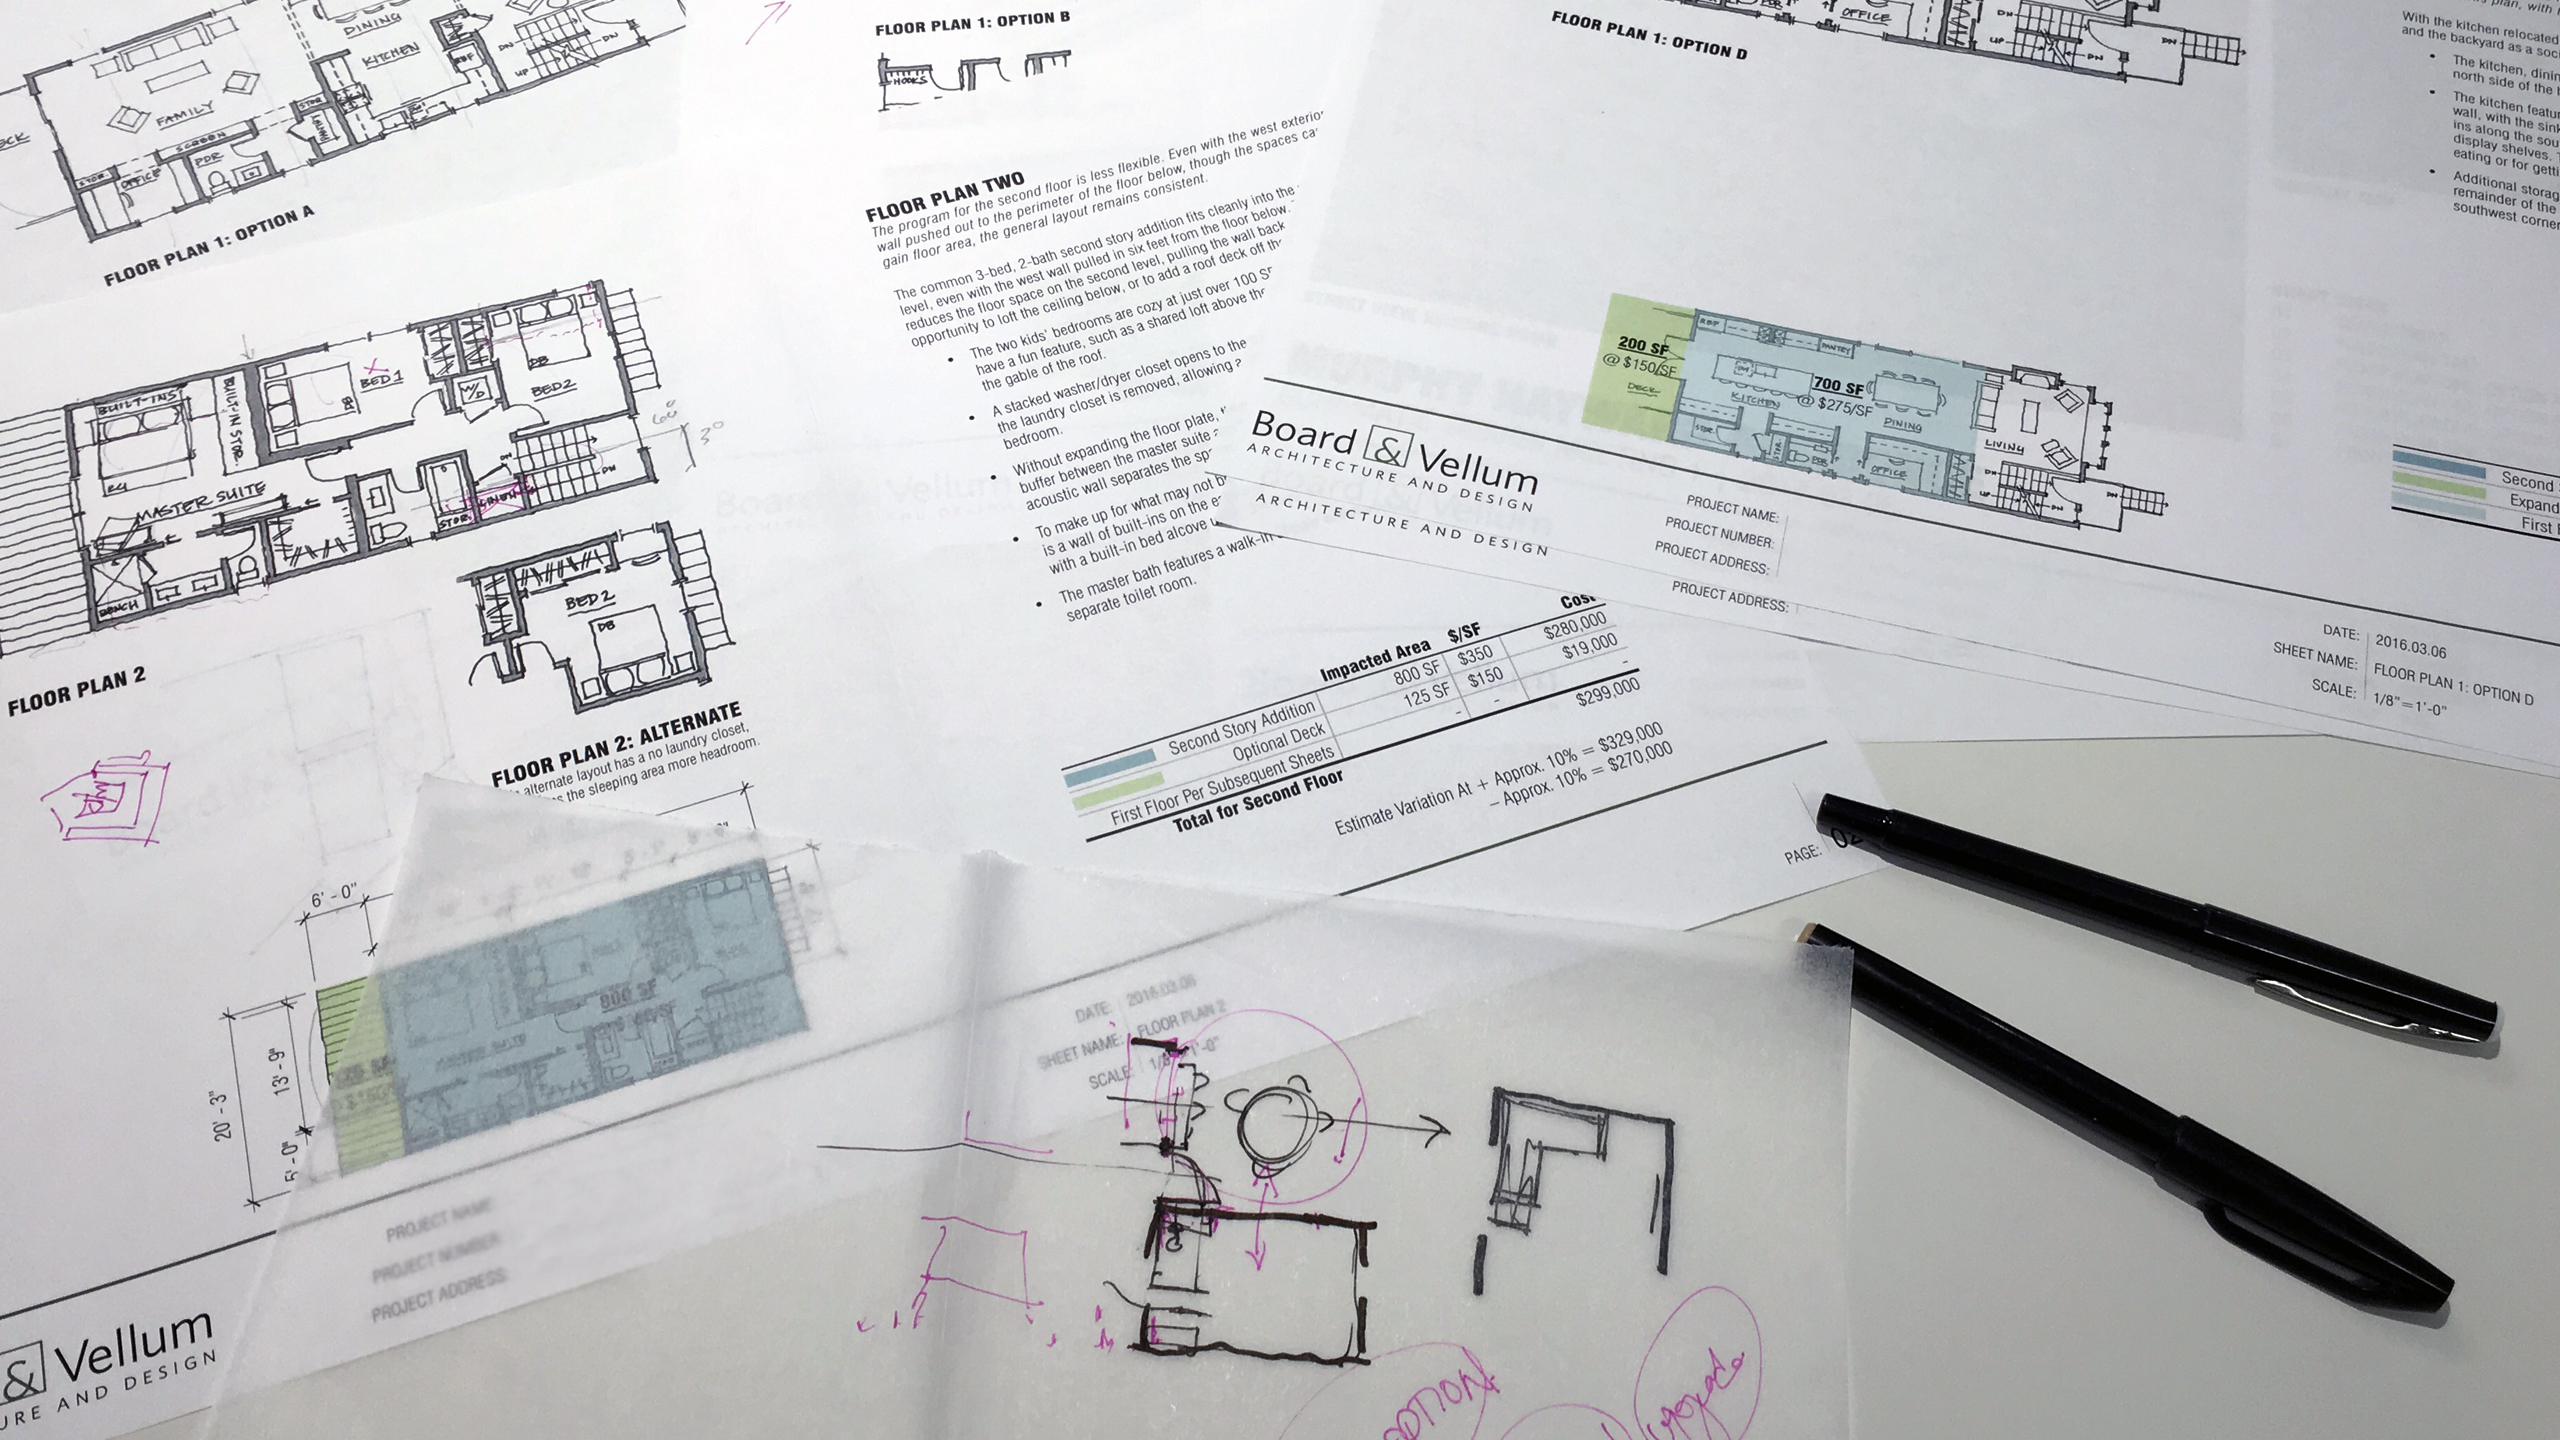 Designing a House Into a Home – Sketching over schematic floor plans at Board & Vellum.